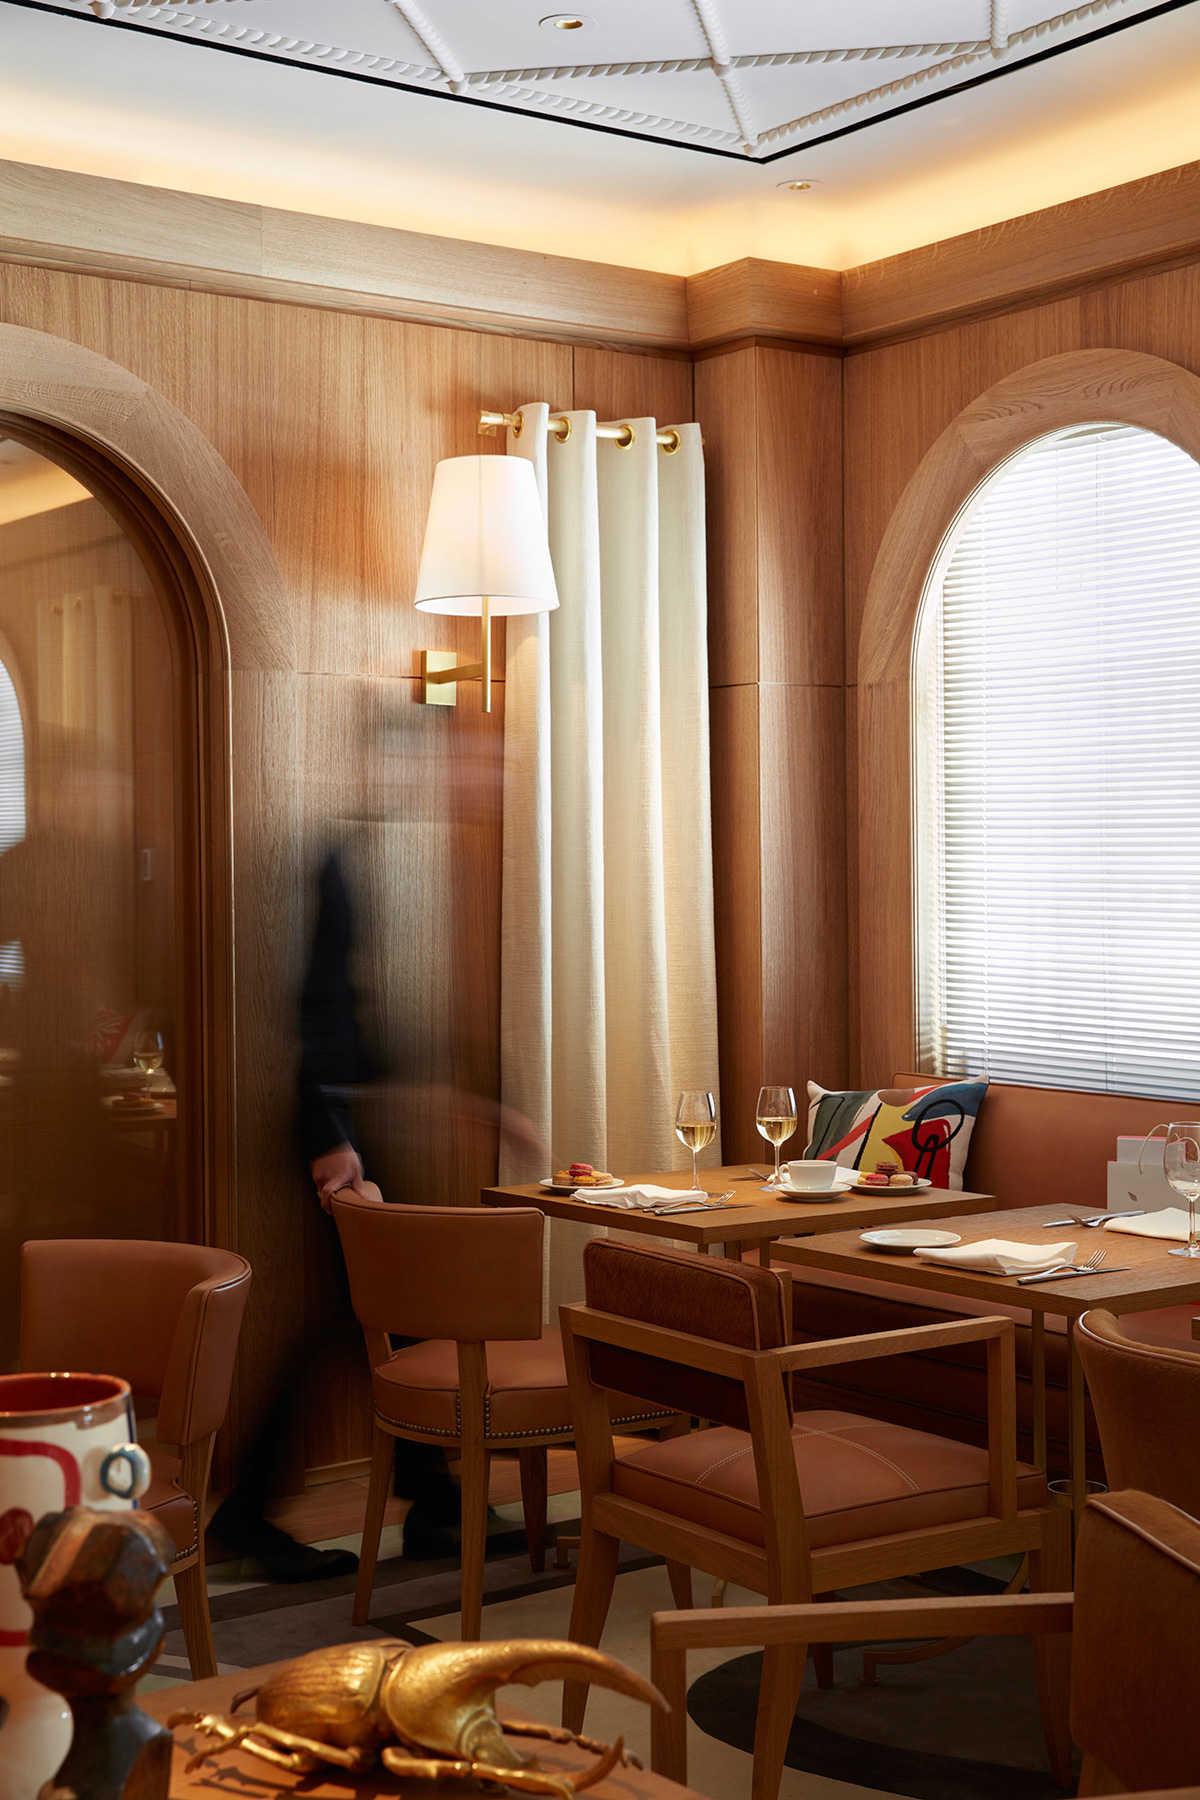 Famous French Food Spot L Avenue Opens Outpost In Saks Fifth Avenue An Interior